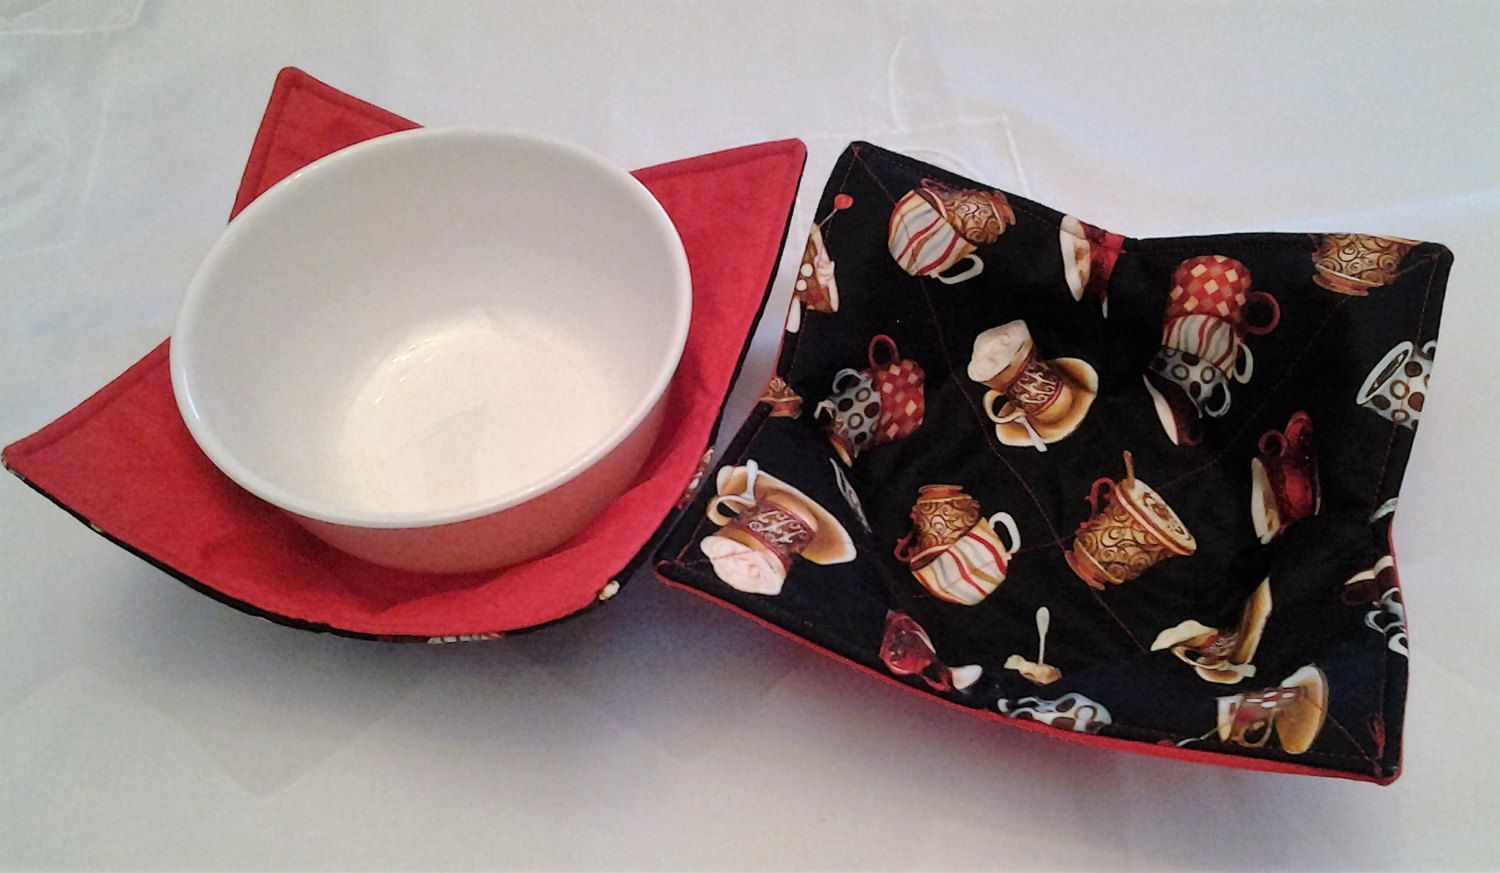 Microwave Bowl Cozy Pot Holder Hot Pad Kitchen Textiles Linens Coffee Cup Print Red Black Brown by CaliSistersCreate on Etsy